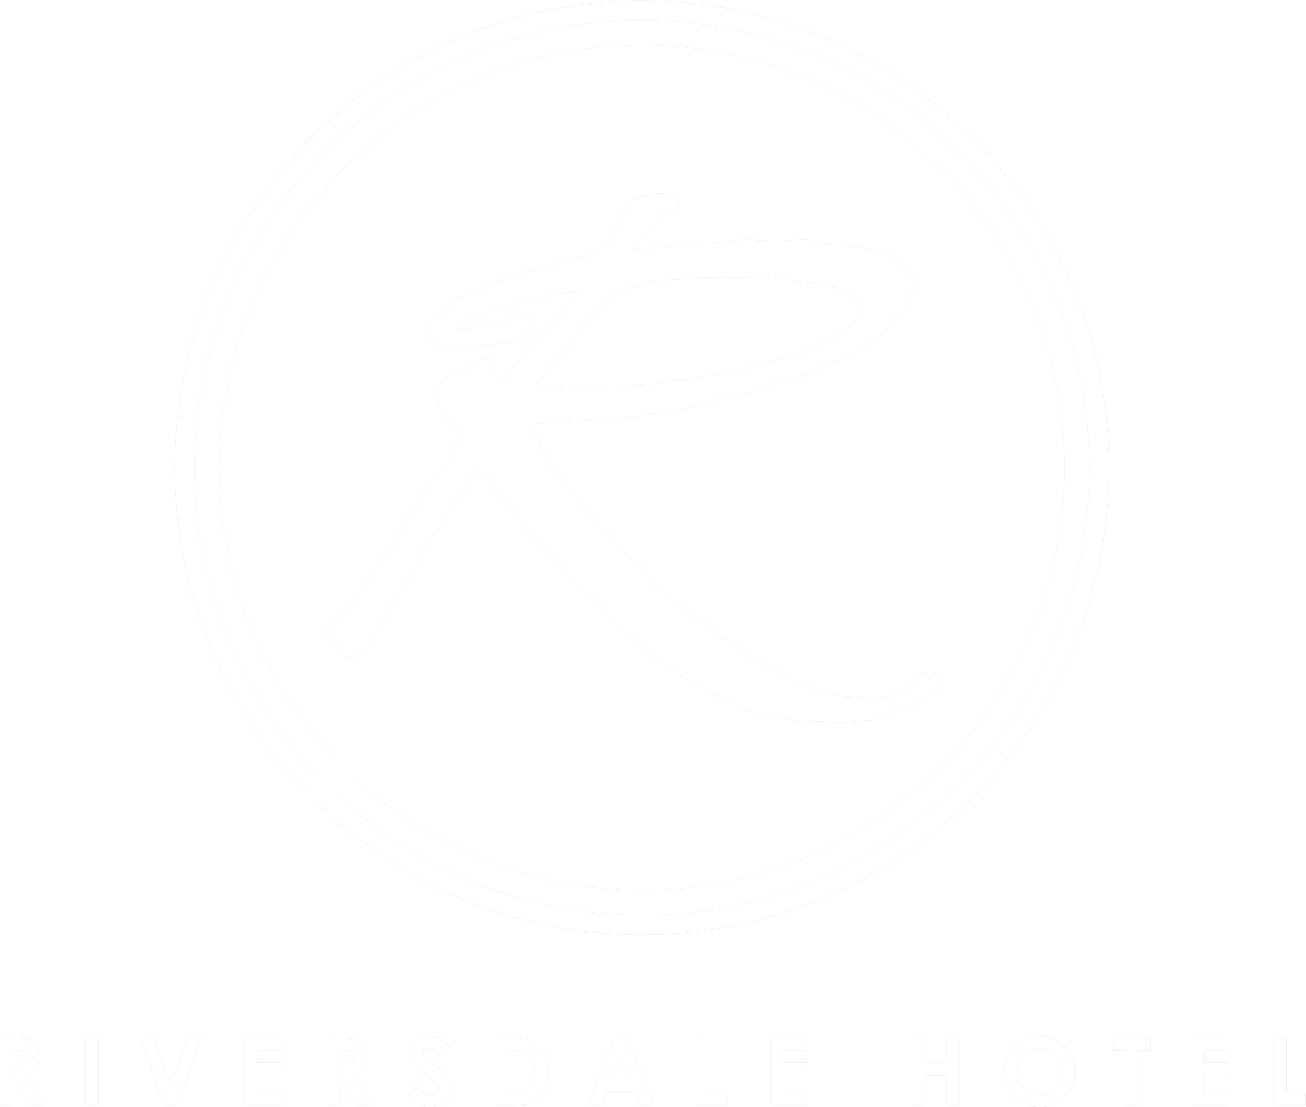 Riversdale Hotel